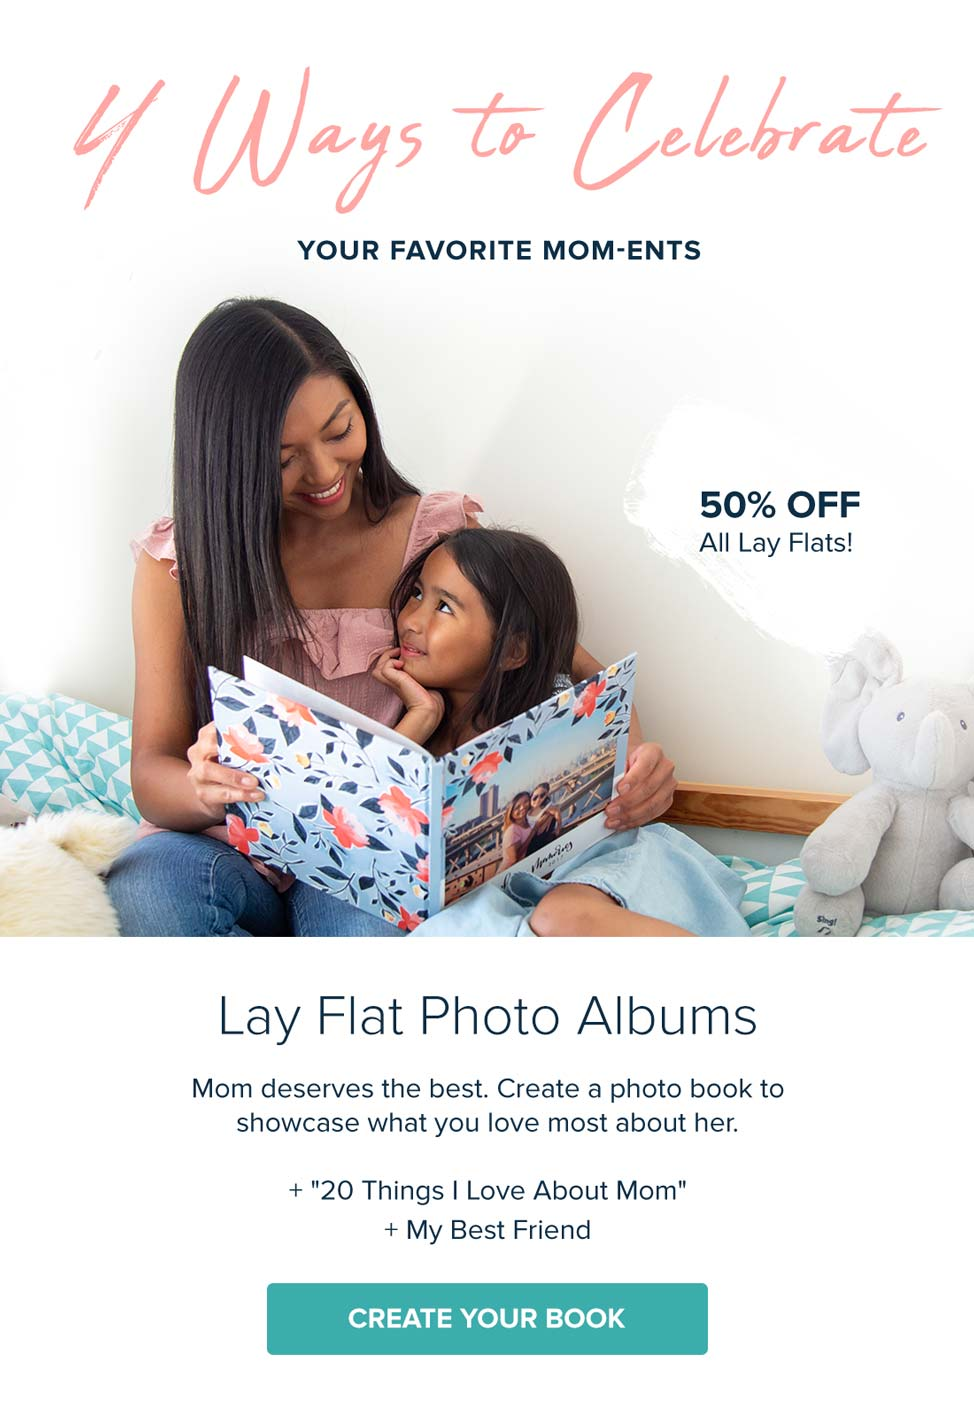 4 Ways to Celebrate Your Favorite Mom-ents: 50% Off ALL Lay Flat Books - Create Now